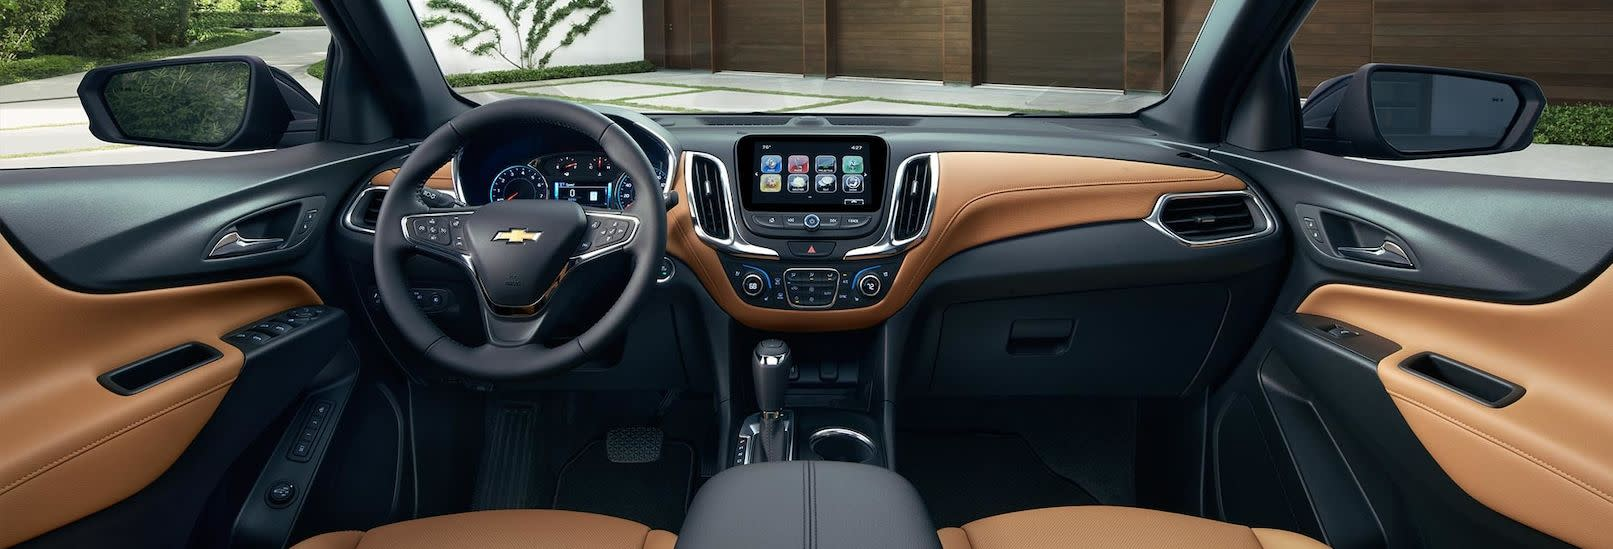 Accommodating Cabin of the 2018 Chevrolet Equinox